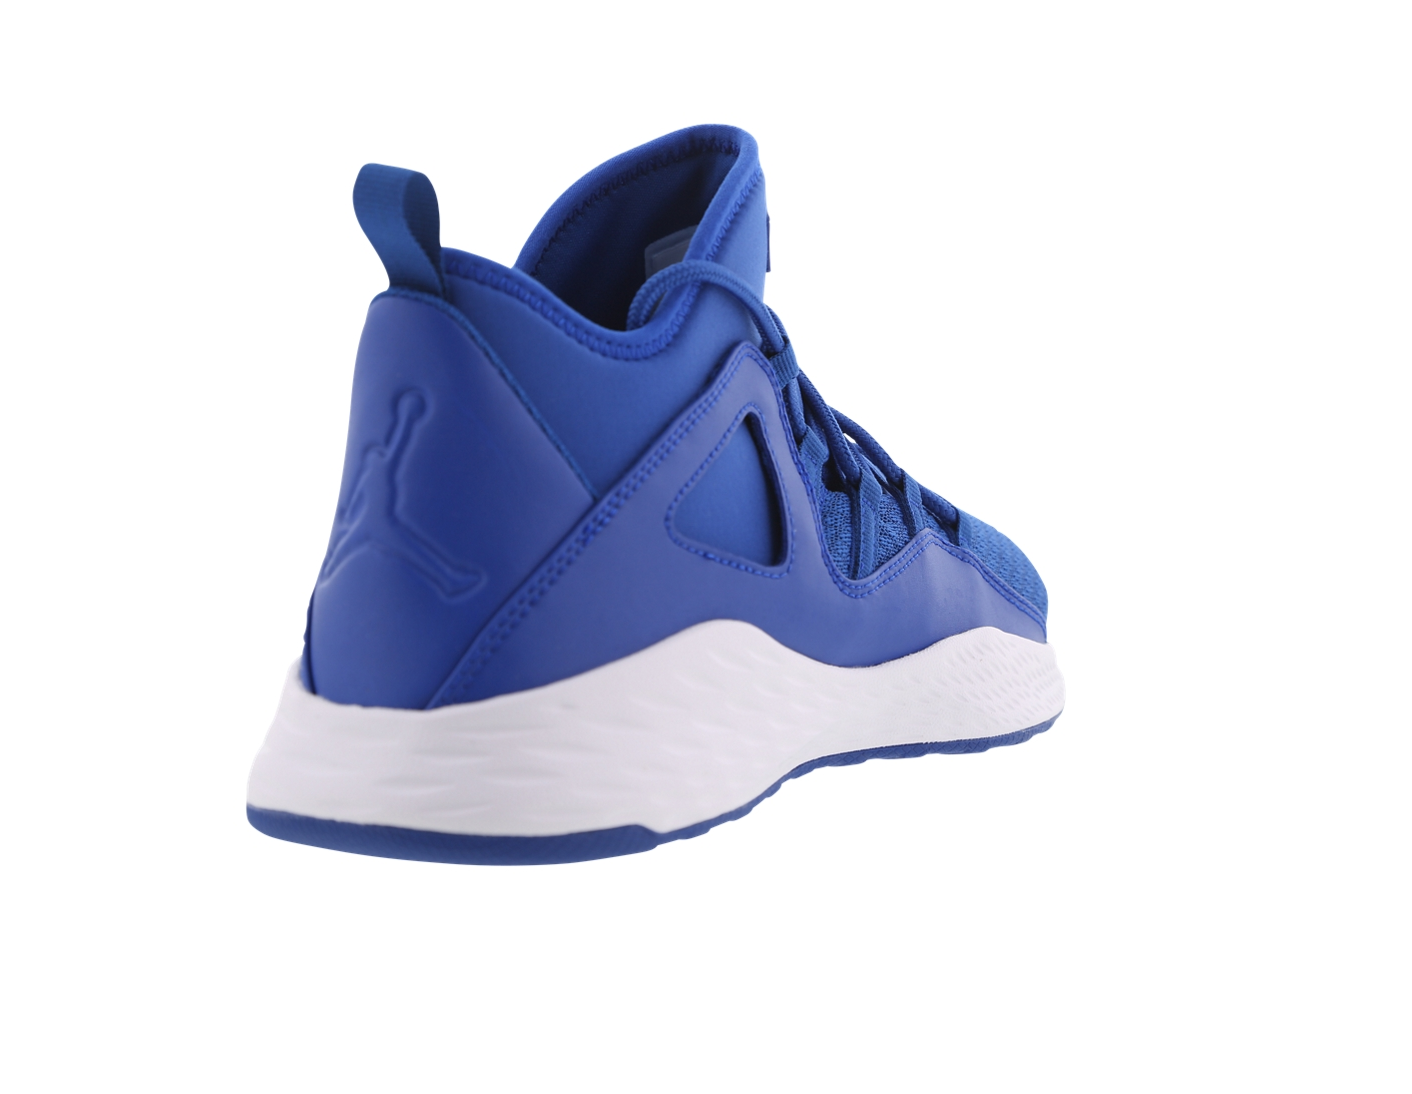 HOMMES NIKE JORDAN FORMULA 23 Team Royal Basketball Trainers Trainers Trainers 881465 401 9c8572